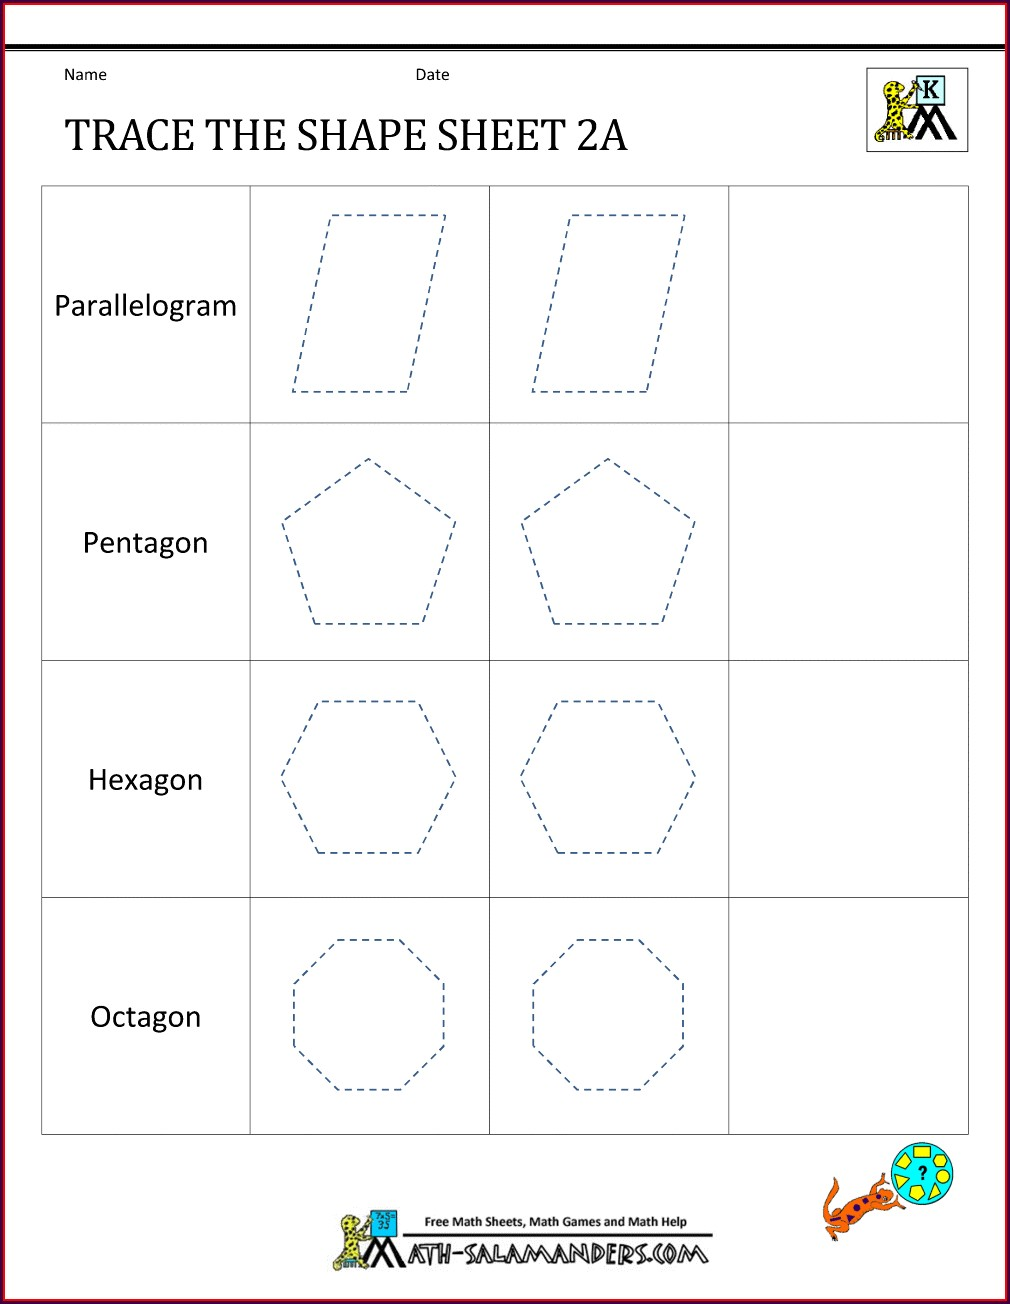 Math Shapes Worksheet For Class 1